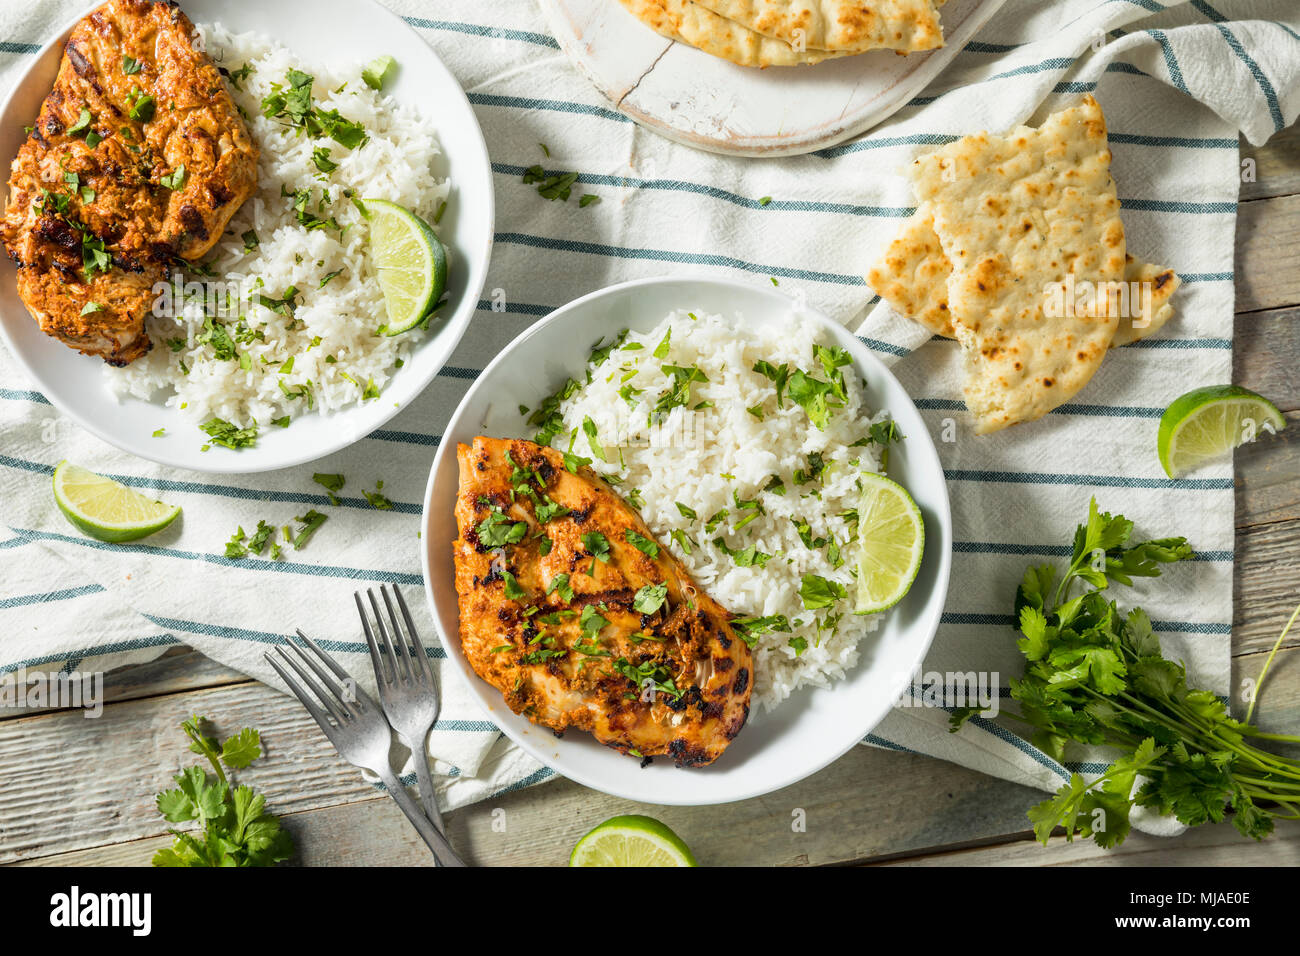 Homemade Indian Tandoori Chicken with Rice and Naan Bread - Stock Image